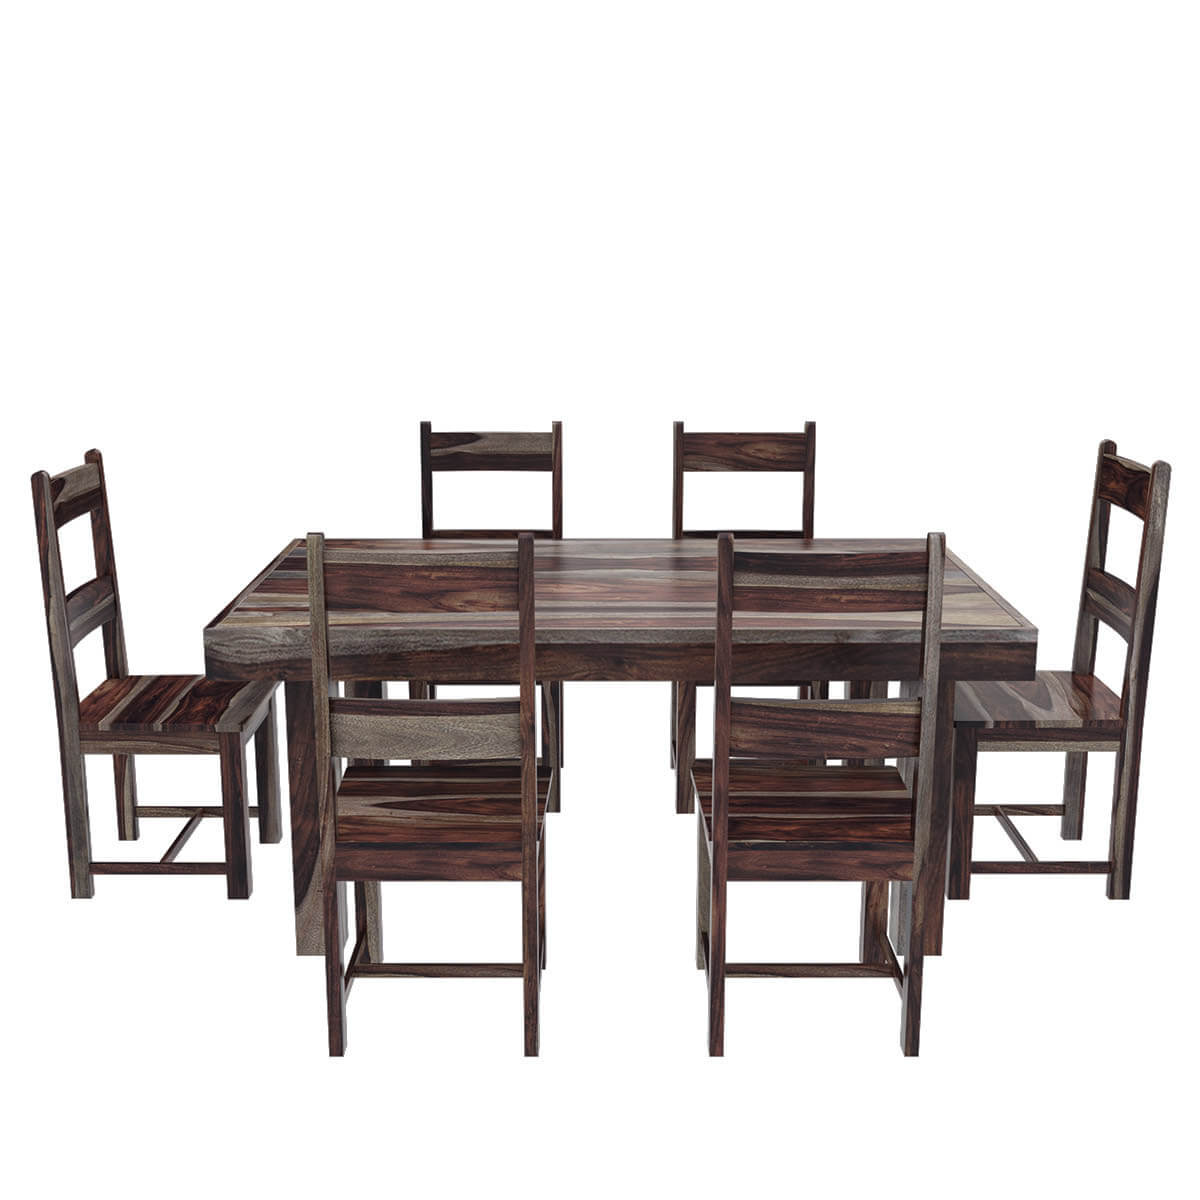 Rustic Wooden Dining Room Table ~ Frisco modern solid wood casual rustic dining room table